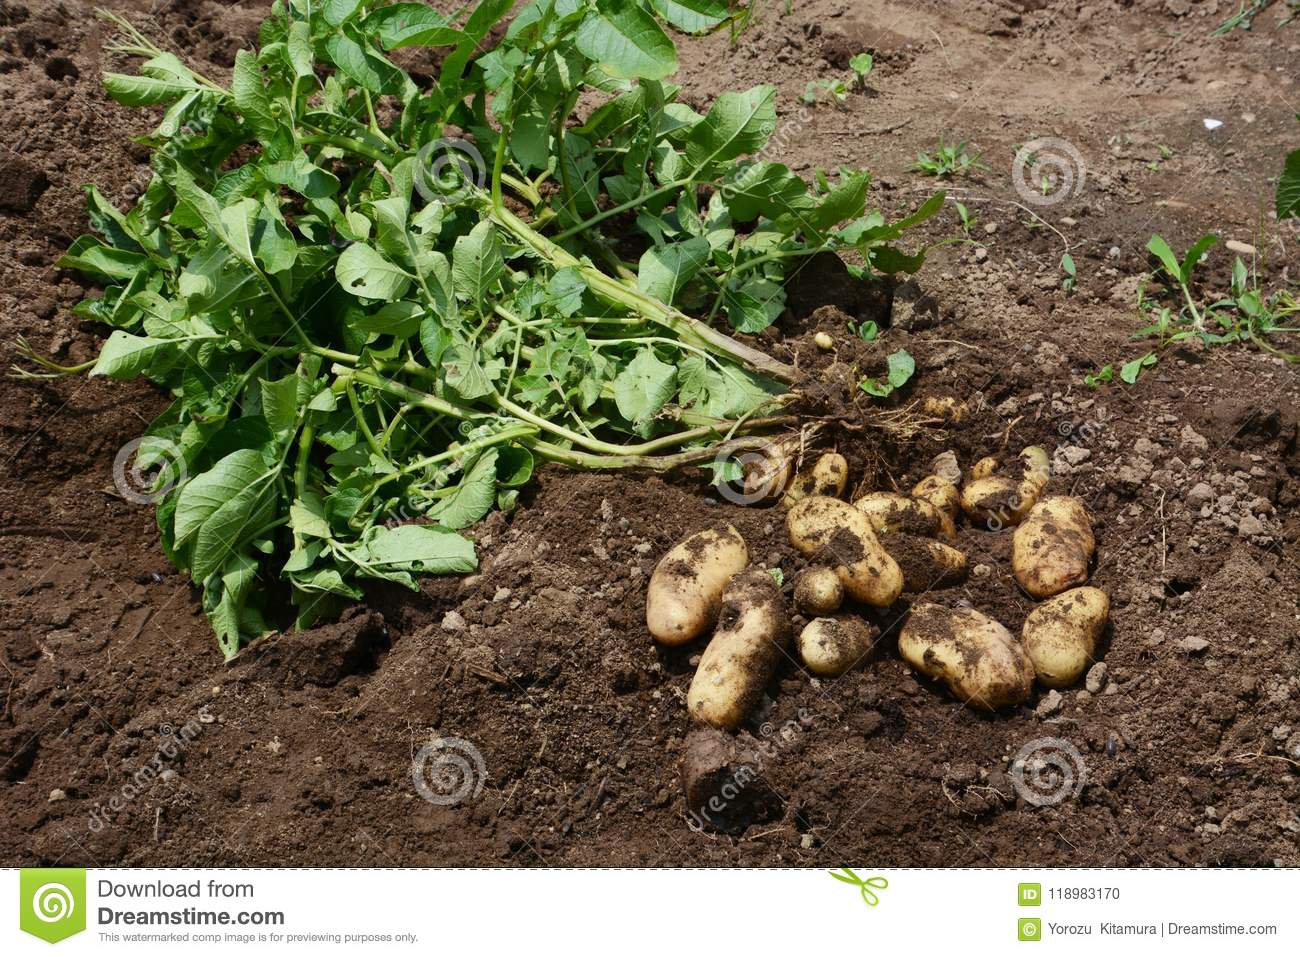 Potato harvest stock photo. Image of cultivated, gardening - 118983170